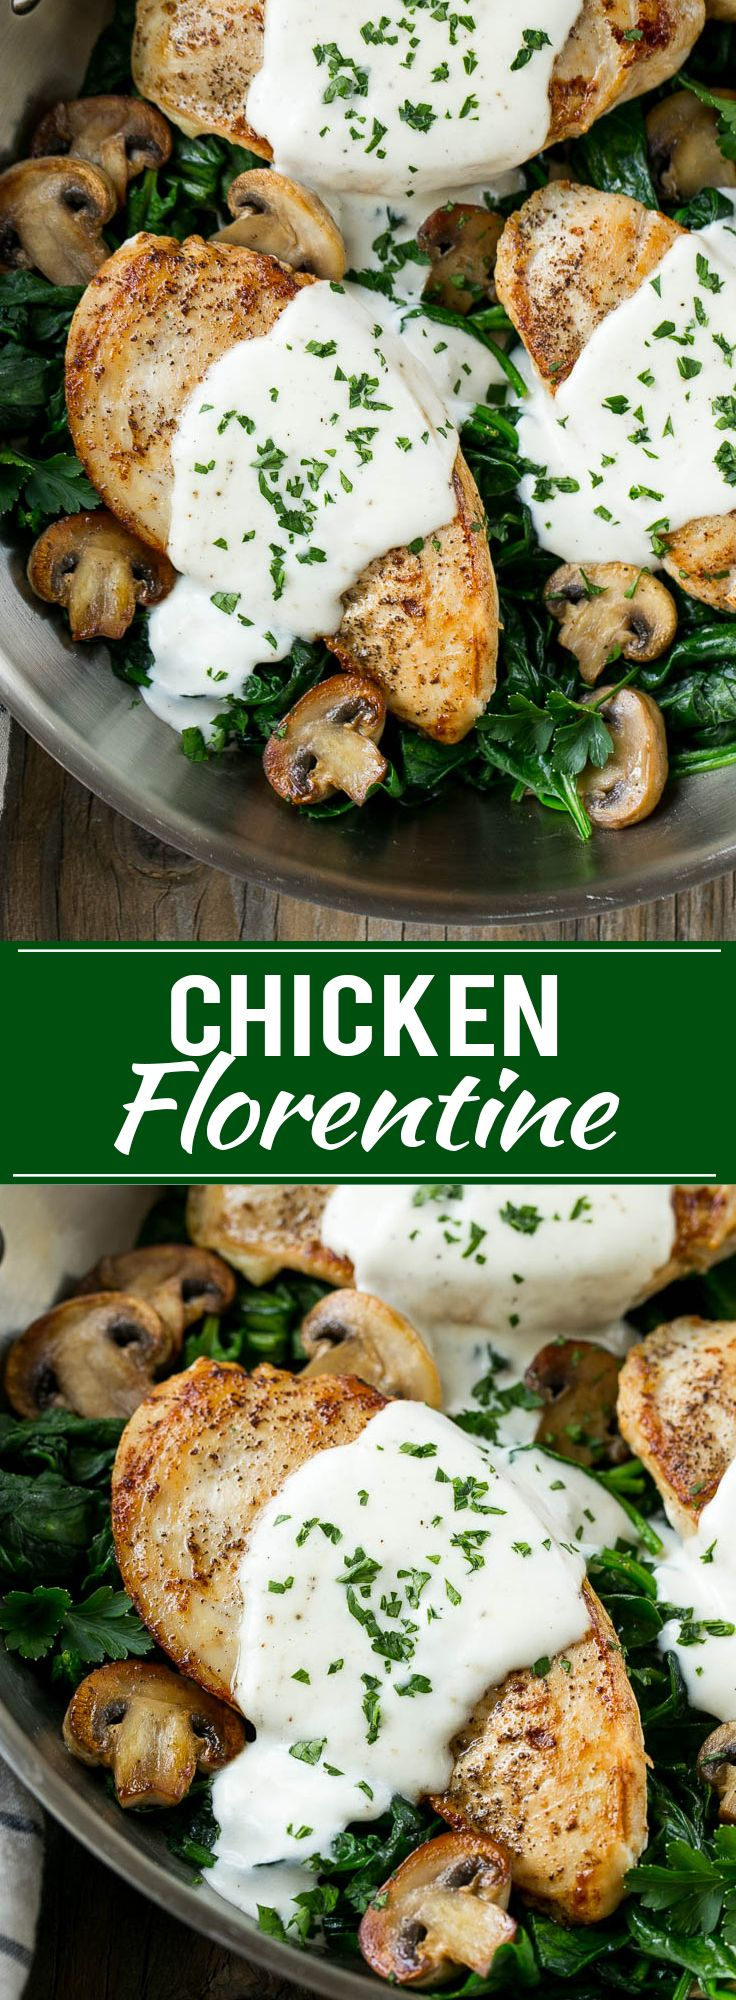 This recipe for chicken florentine is golden brown chicken breasts, topped with a creamy sauce and served over a bed of spinach. A classic dinner that will have you licking your plate!